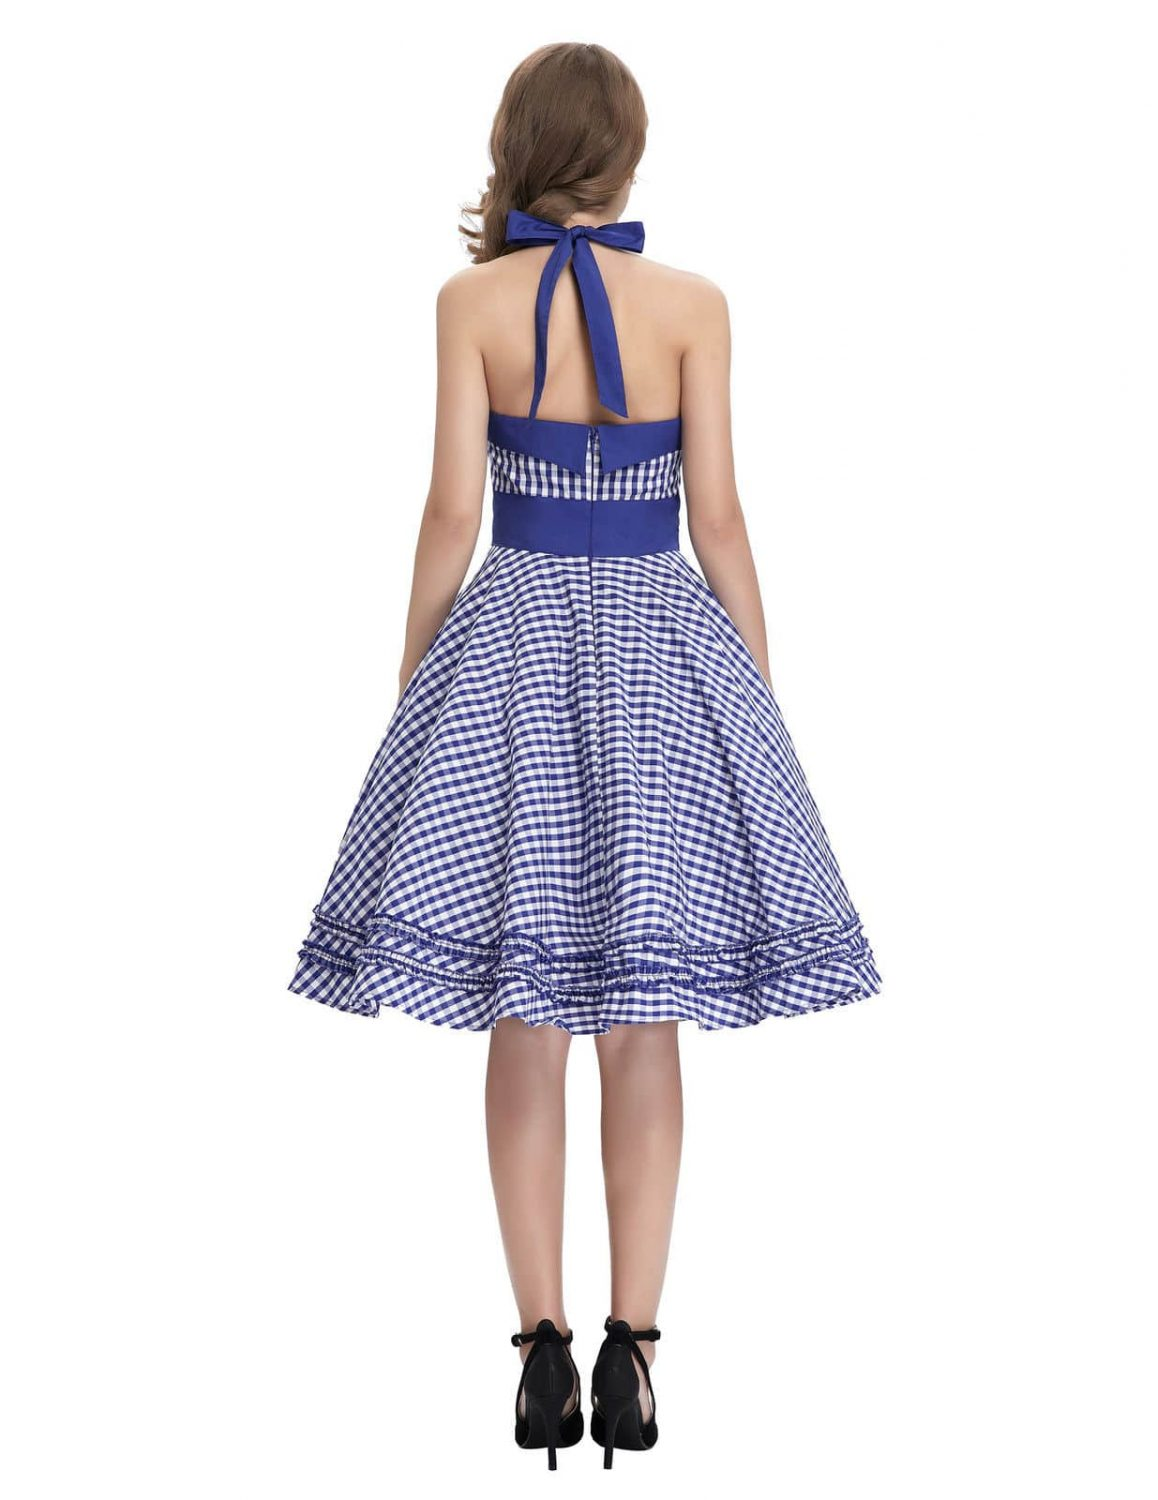 Blue Gingham Halter Pin Up Dress 1950sglam